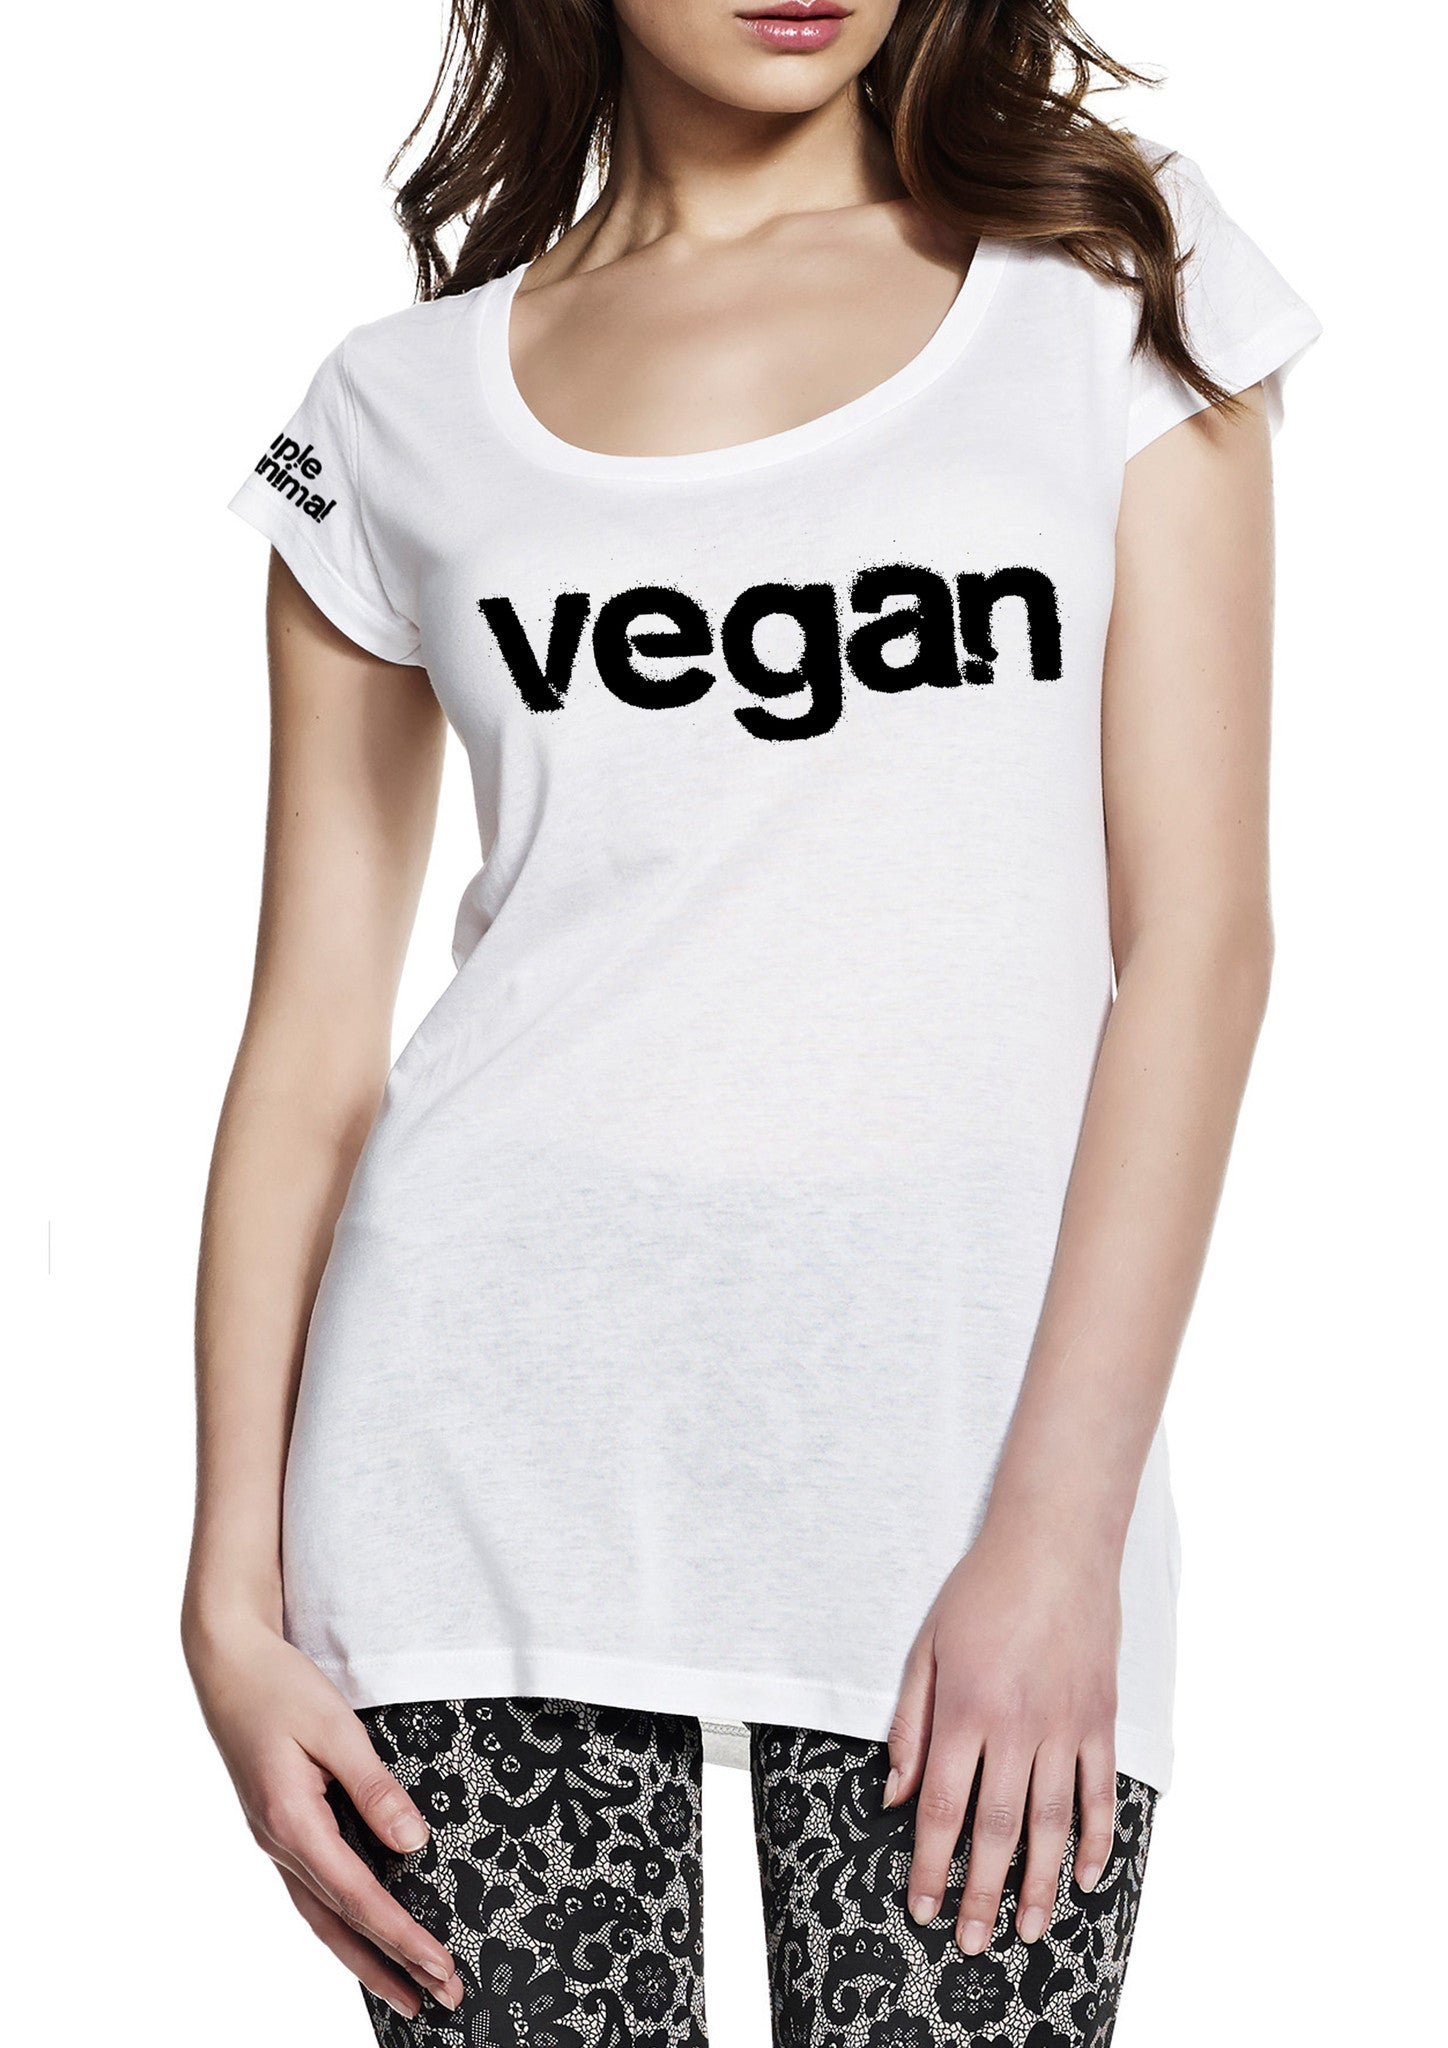 The Vegan, Girlie Style, 50% Tencel® (Lyocell) - 50% Organic Cotton, Dolls - Simple Animal